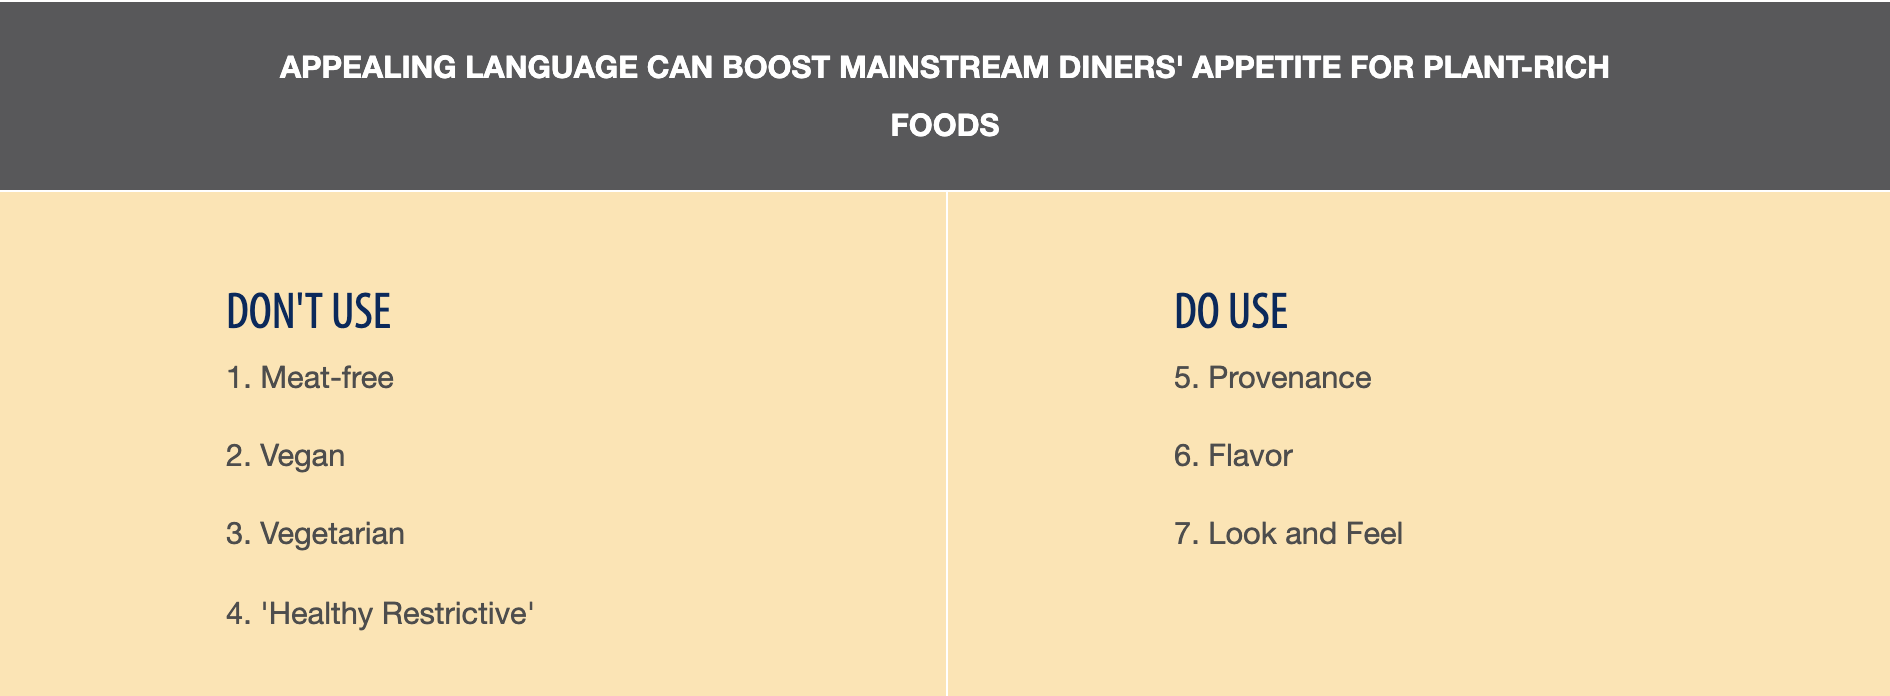 Graph of do's and don'ts for language for meat-free items